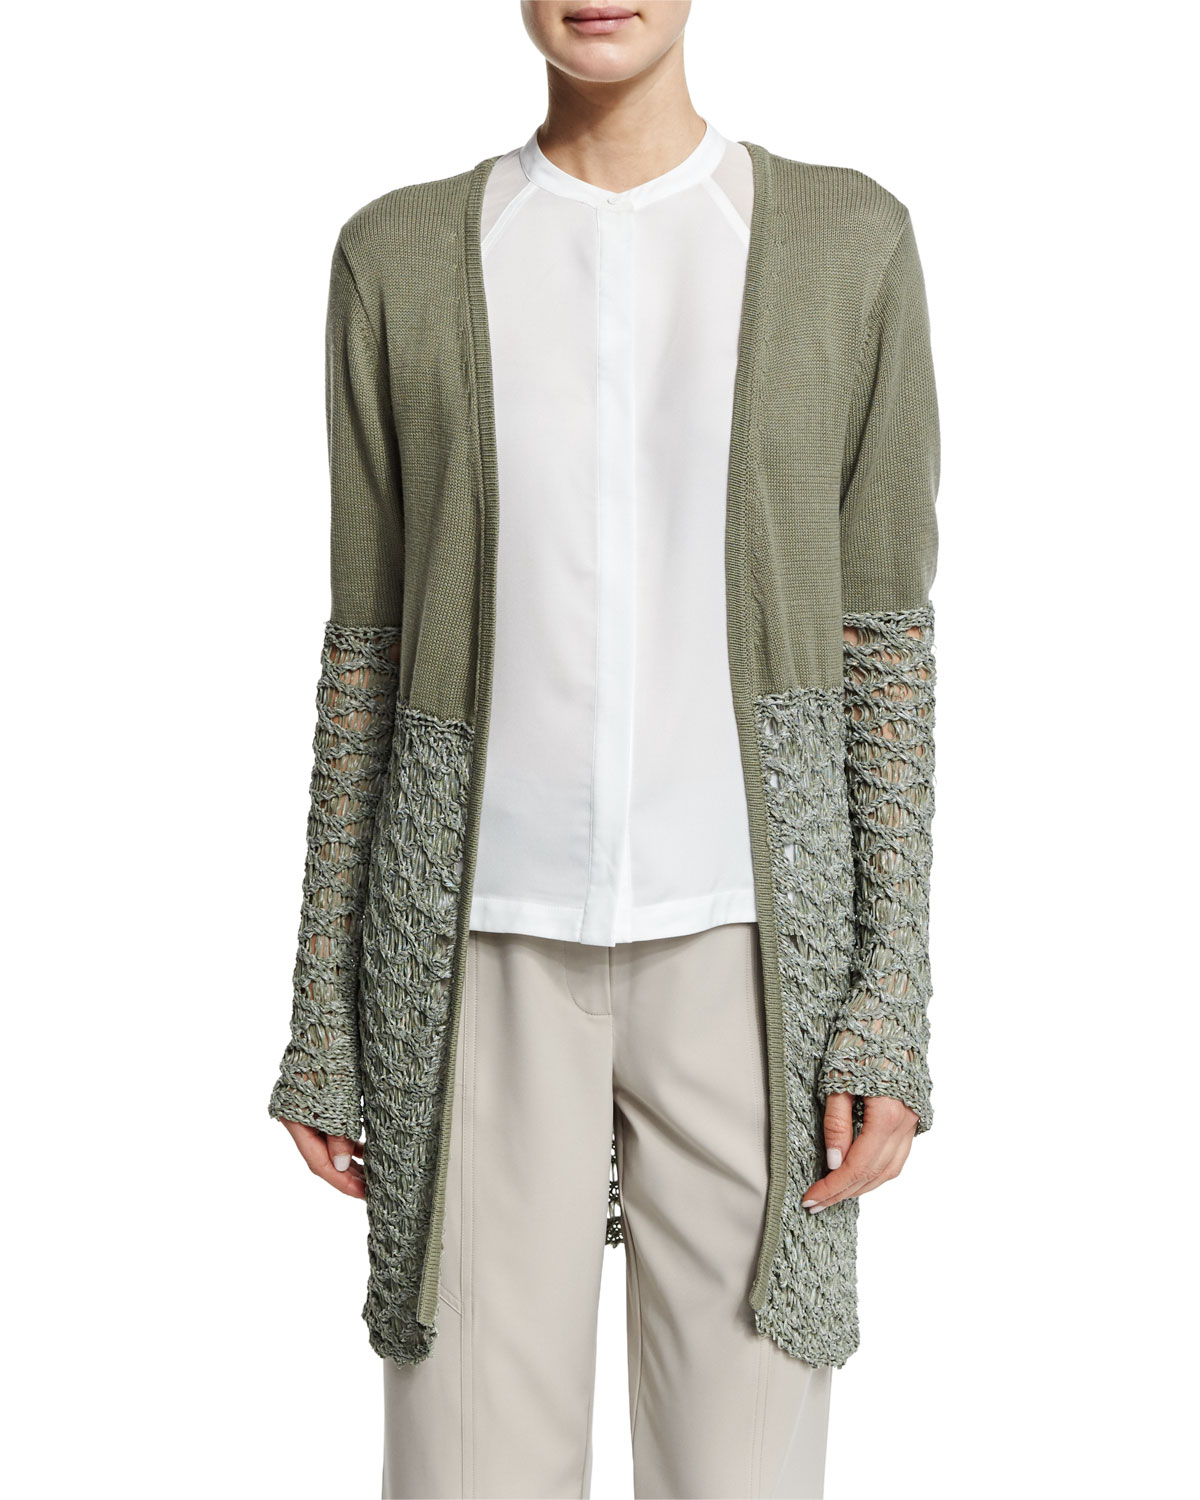 Textured-Block Duster Cardigan, Size: XL/16, Green - Neiman Marcus